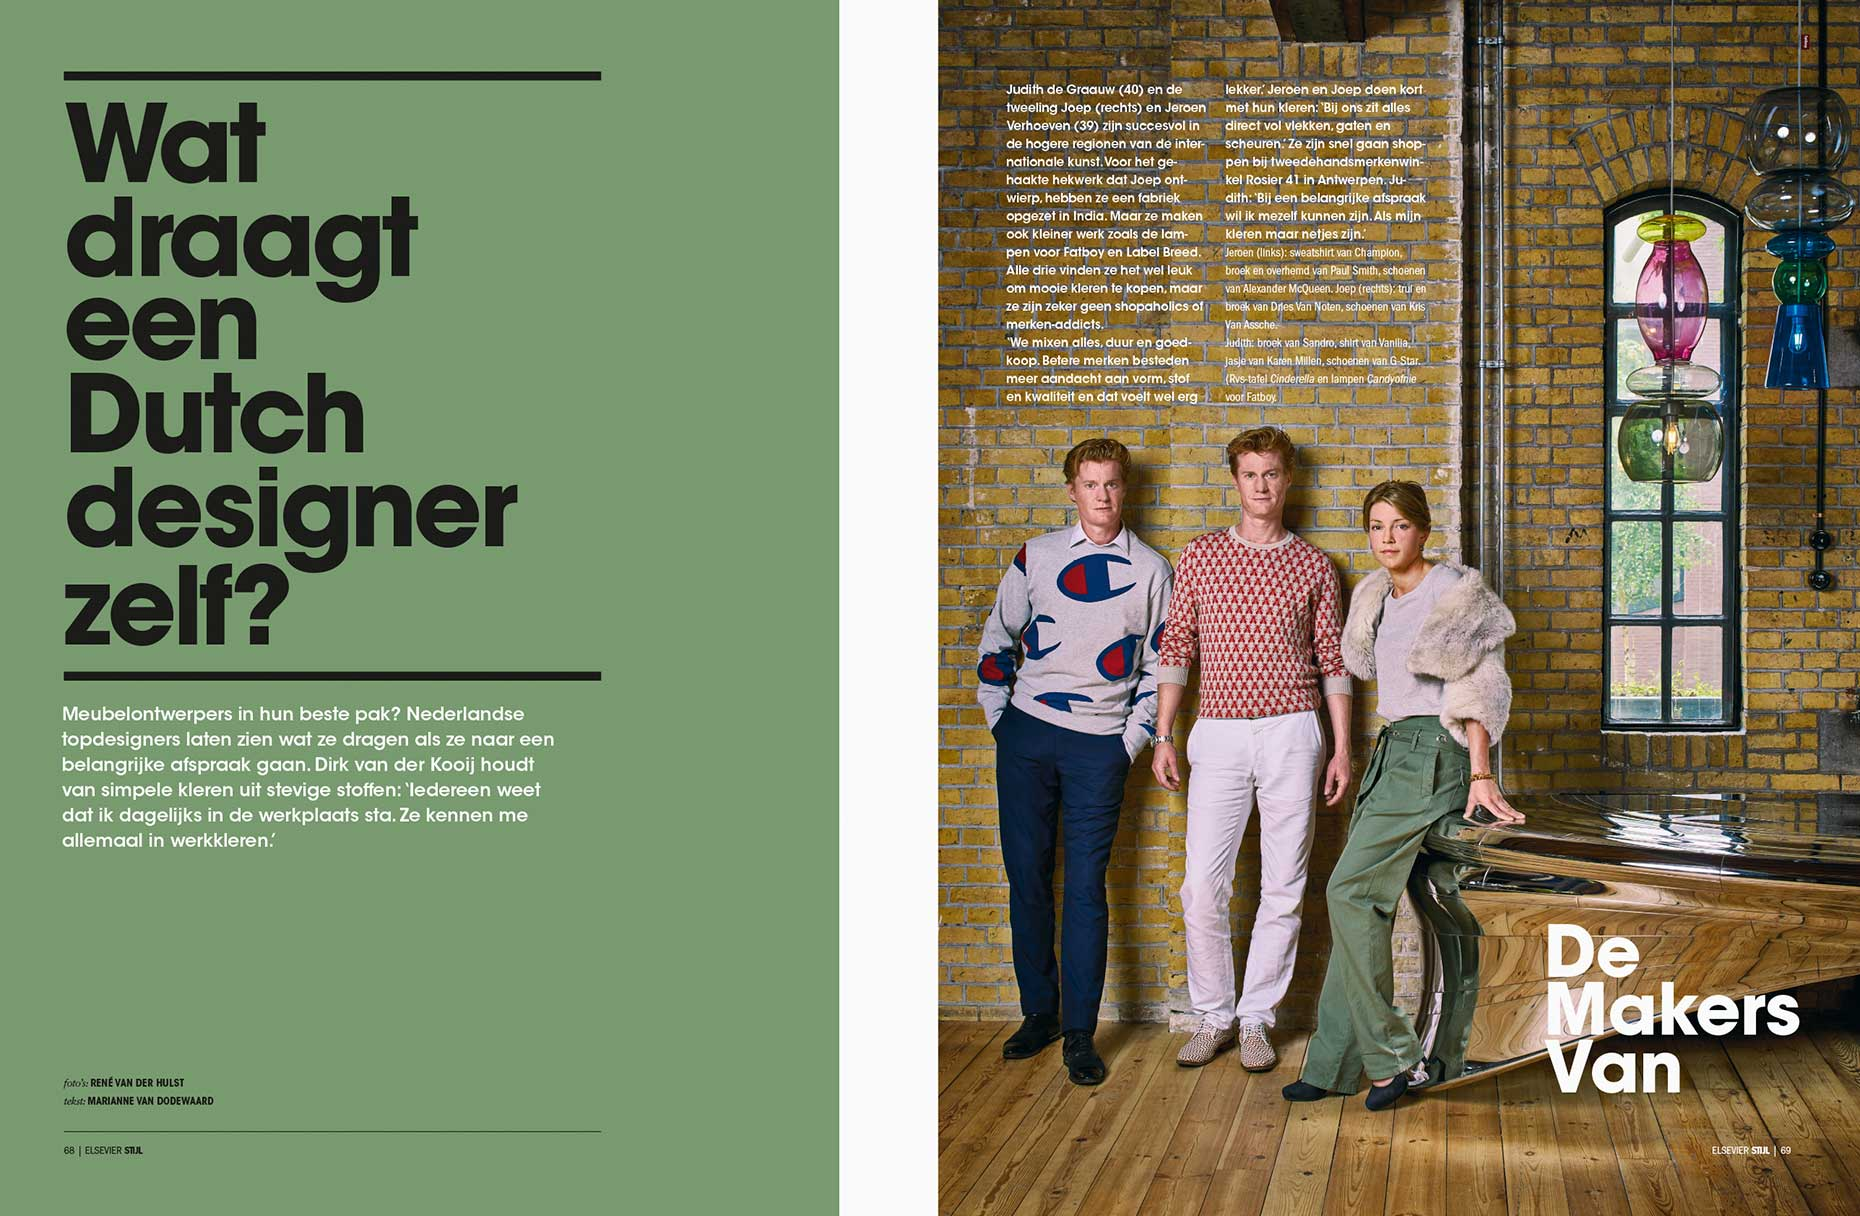 Dressed Dutch Designers De Makers Van Elsevier magazine